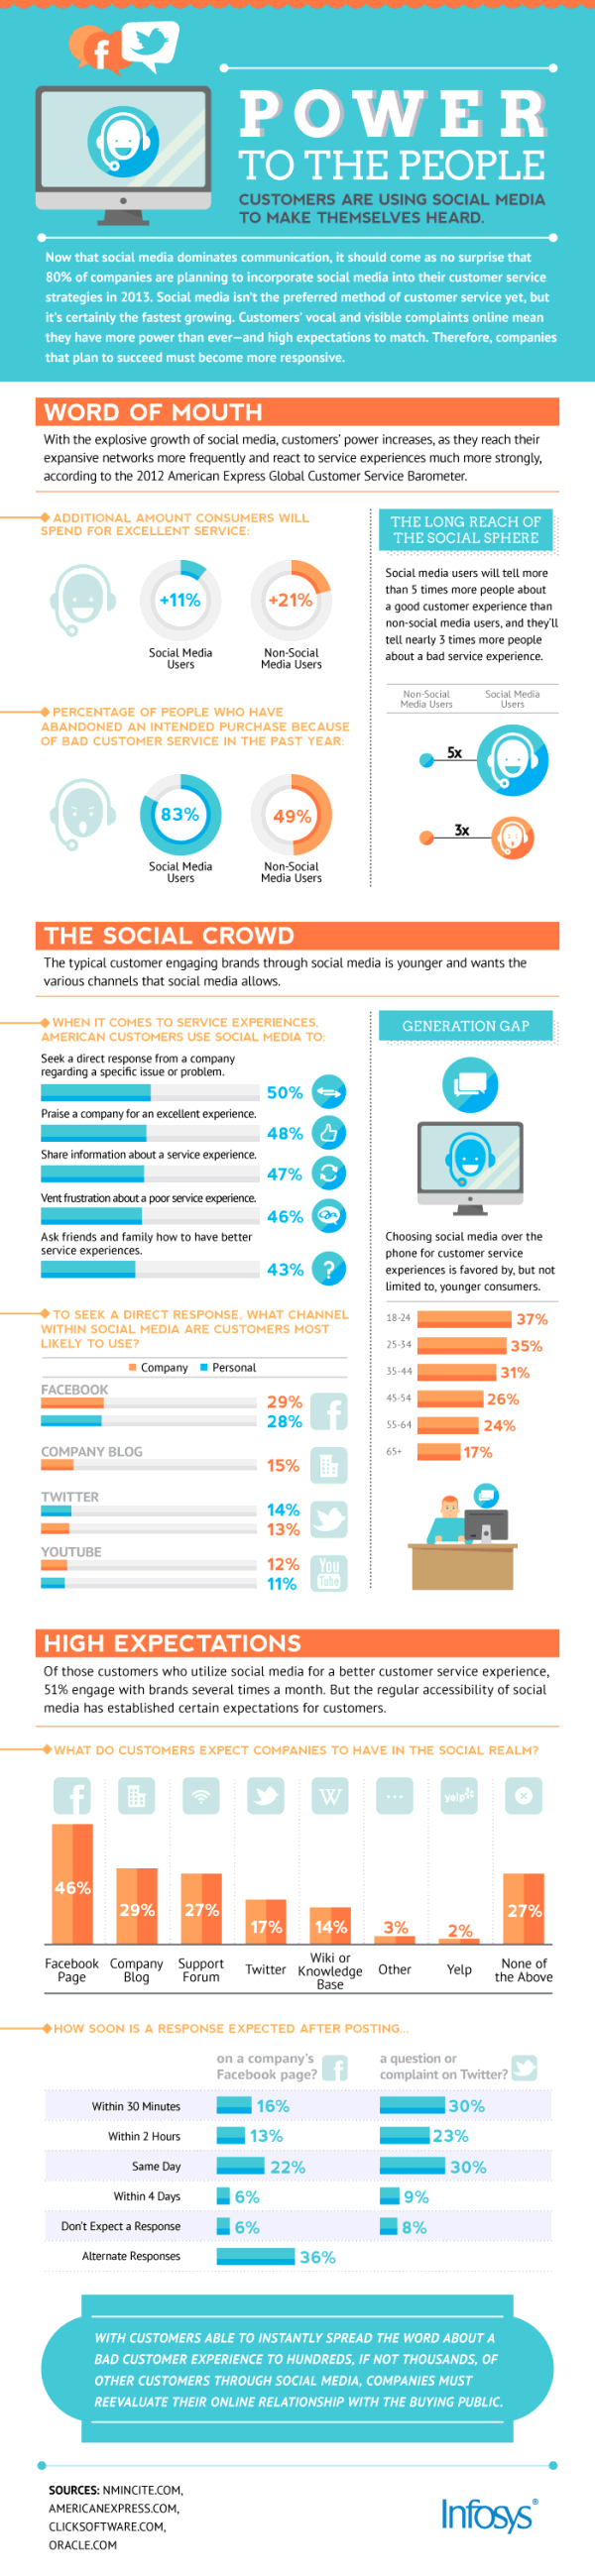 Infosys social customer support people power infographic